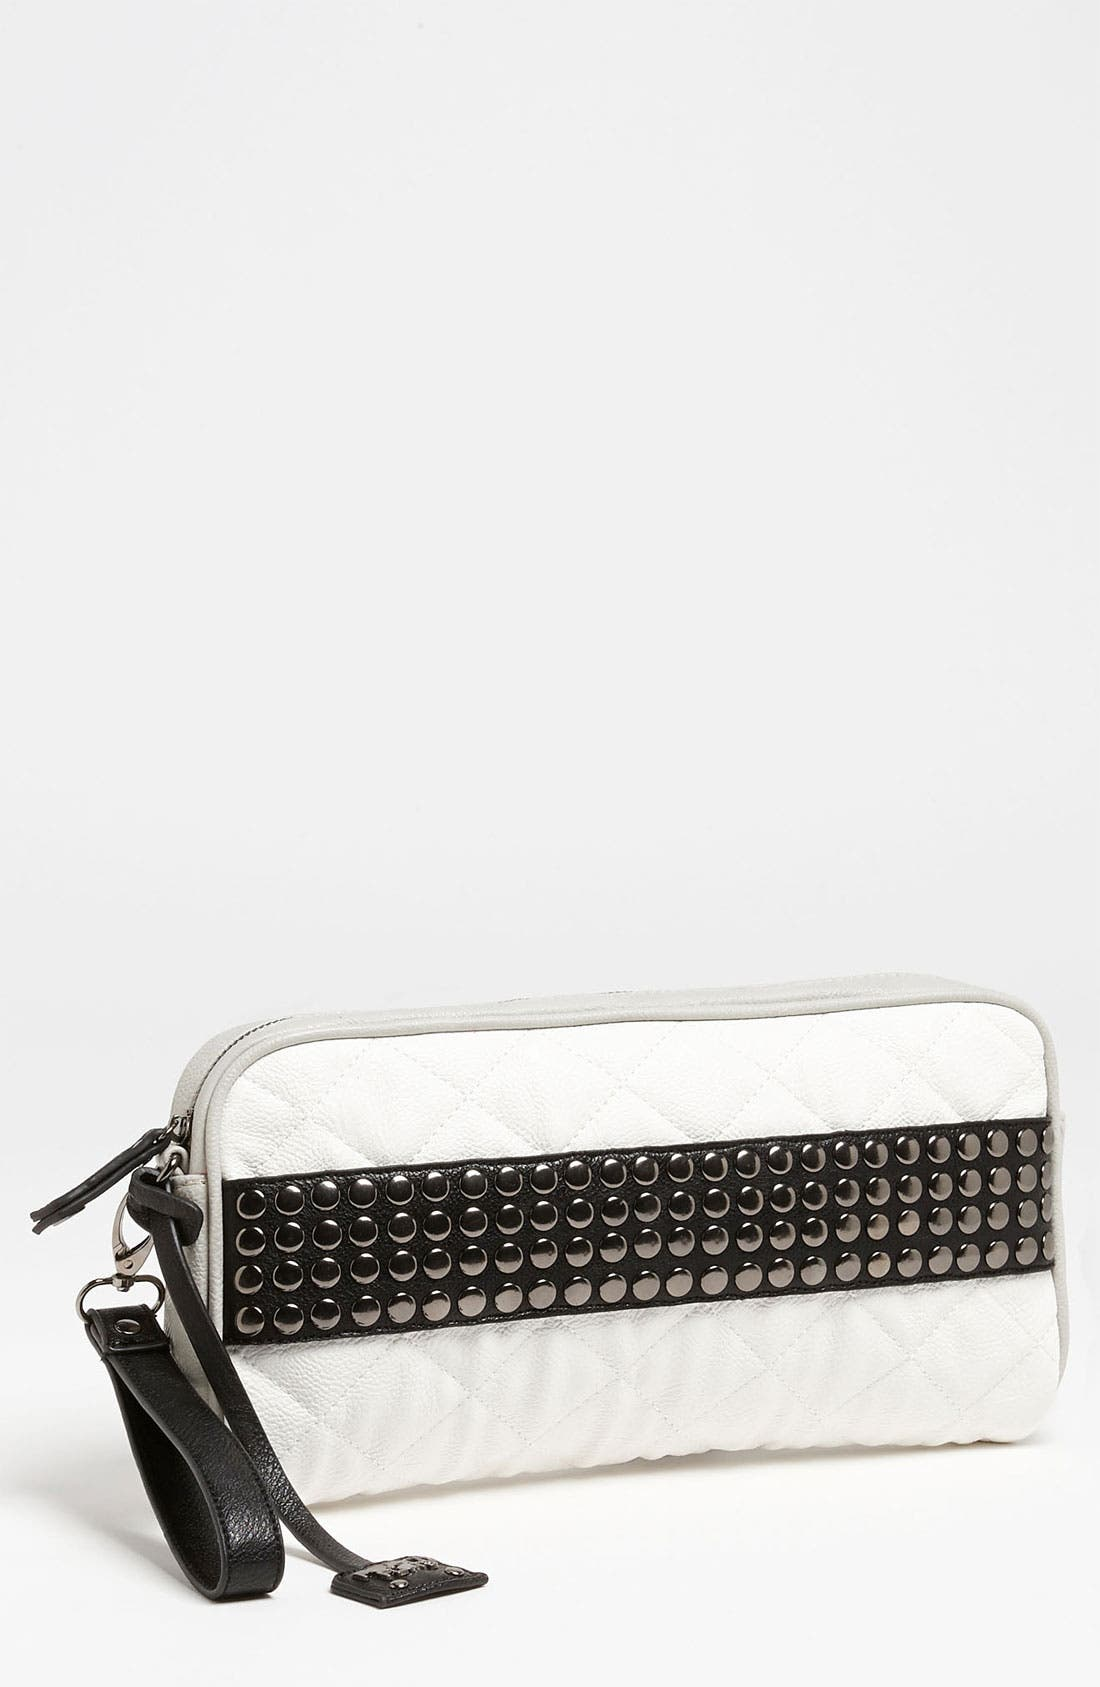 Main Image - POVERTY FLATS by rian Studded Clutch